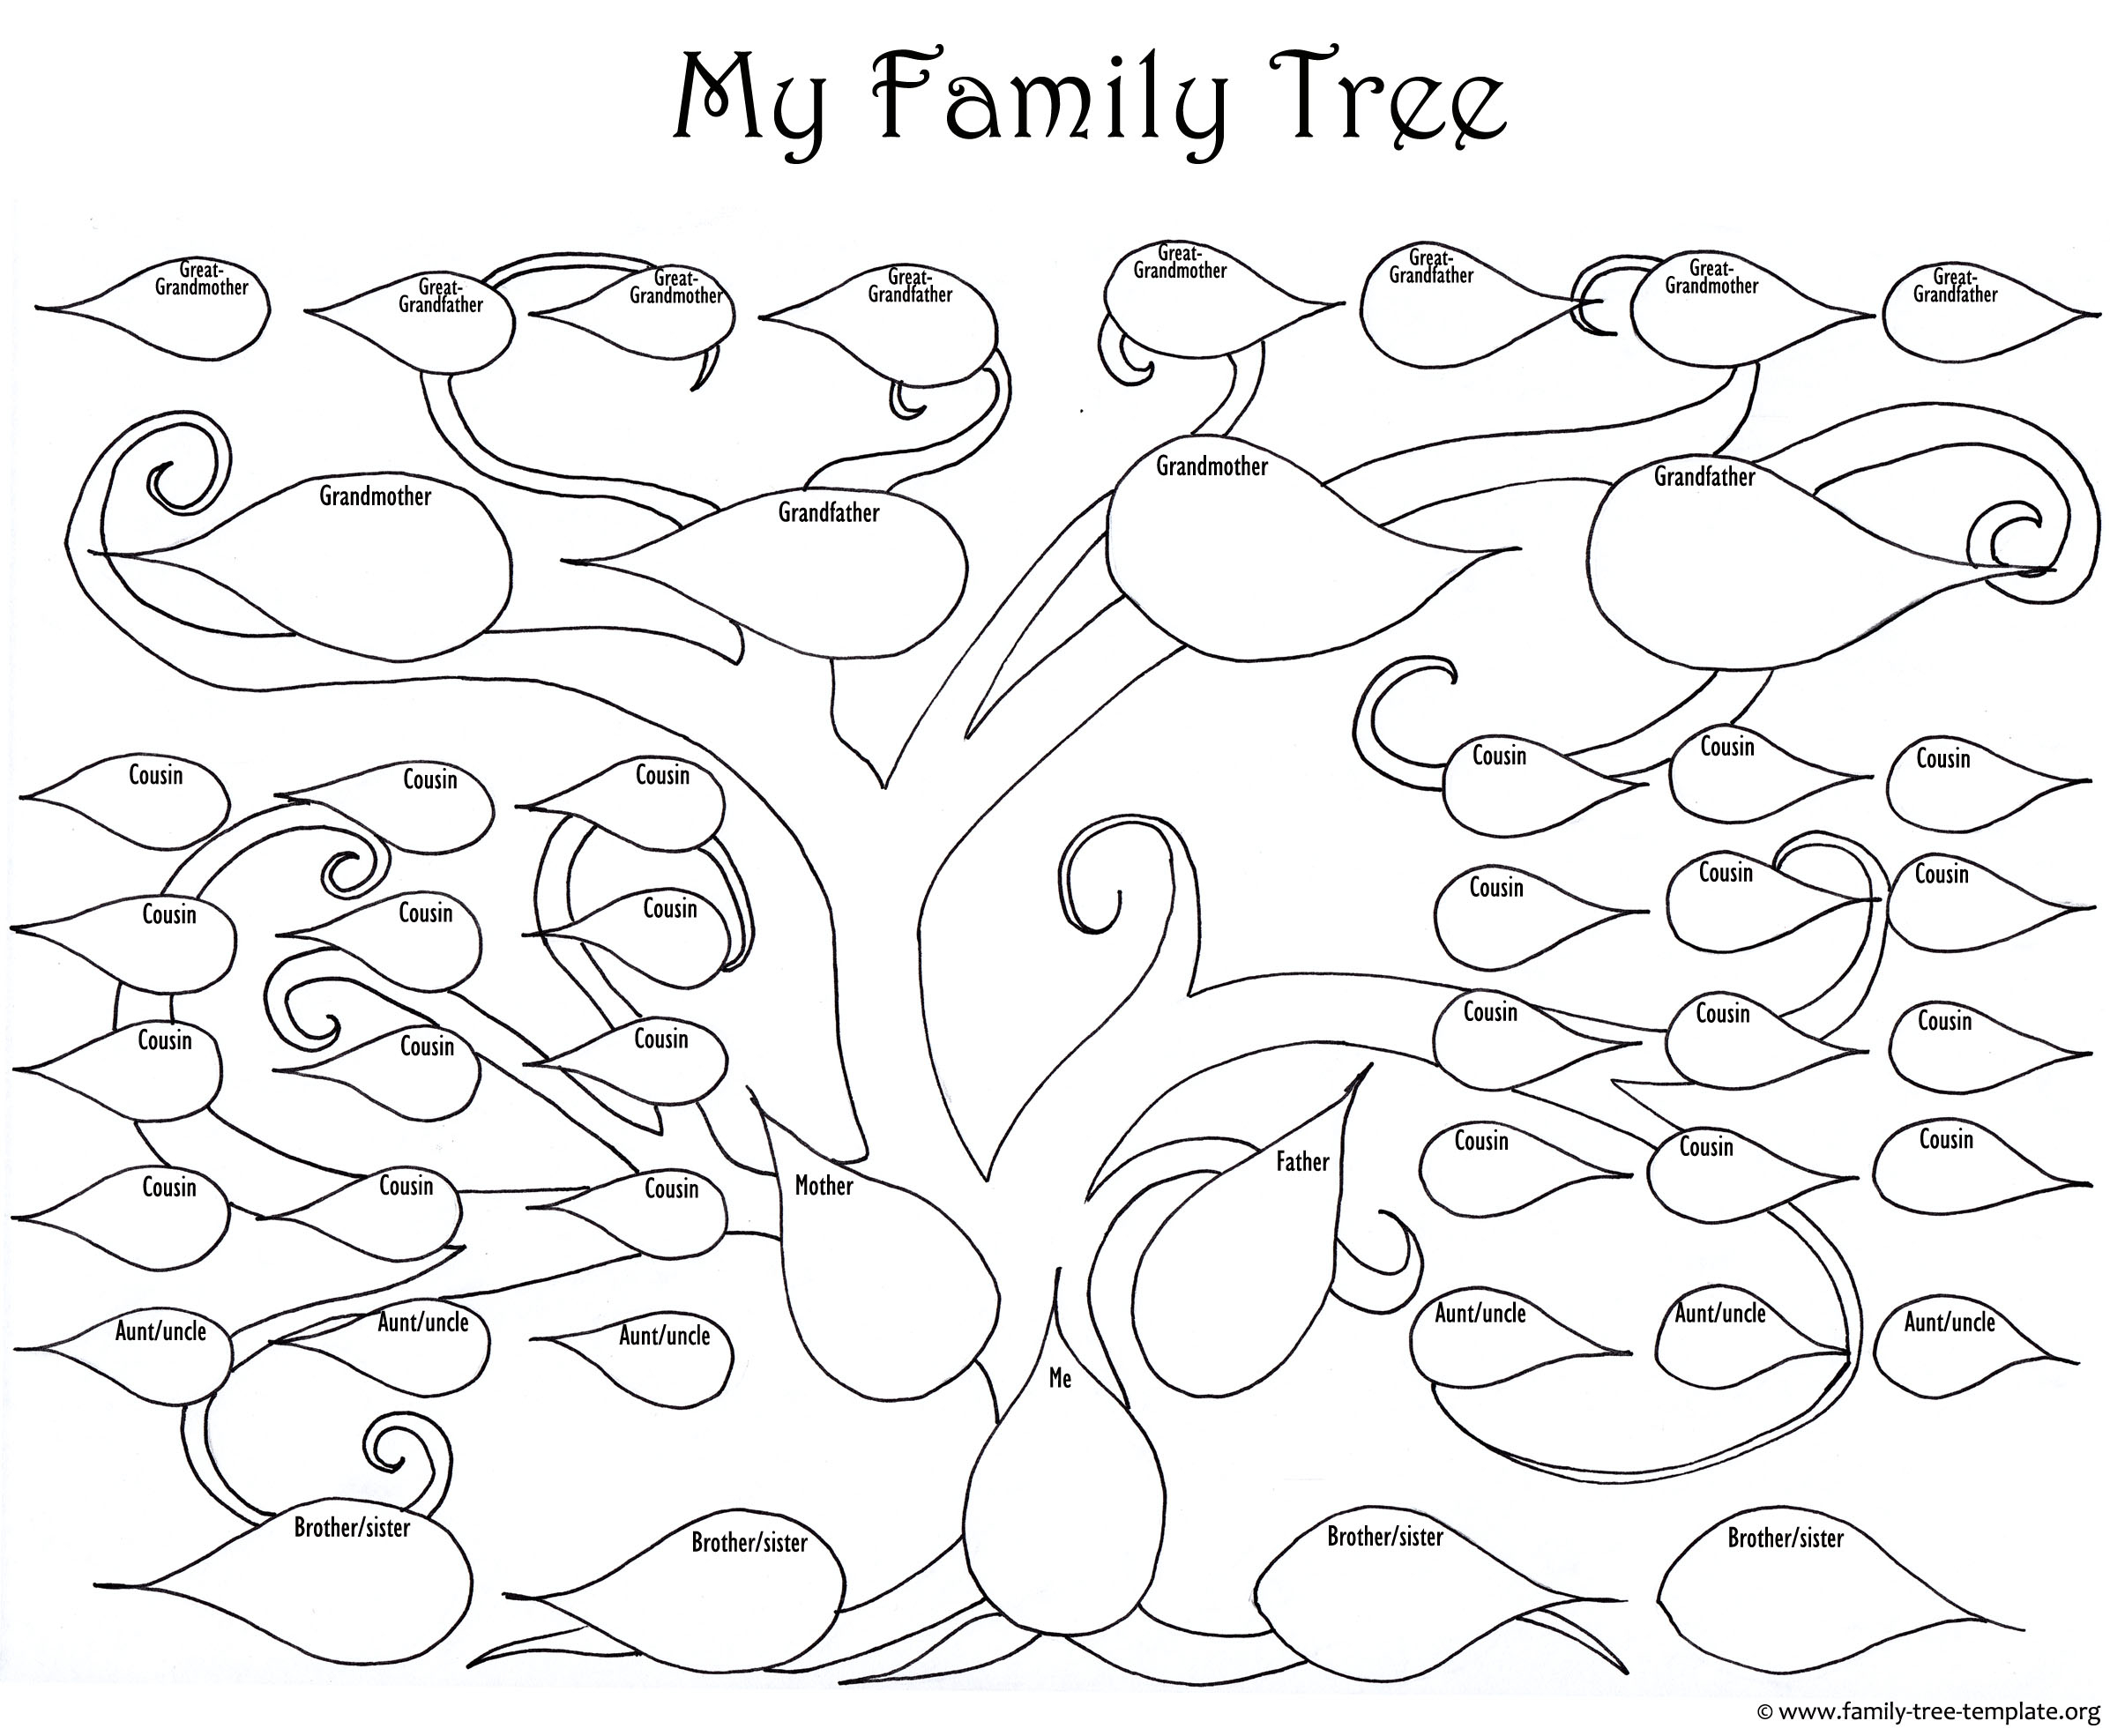 2393x1969 Simple Family Tree Drawing Family Tree Design Templates Free,tree